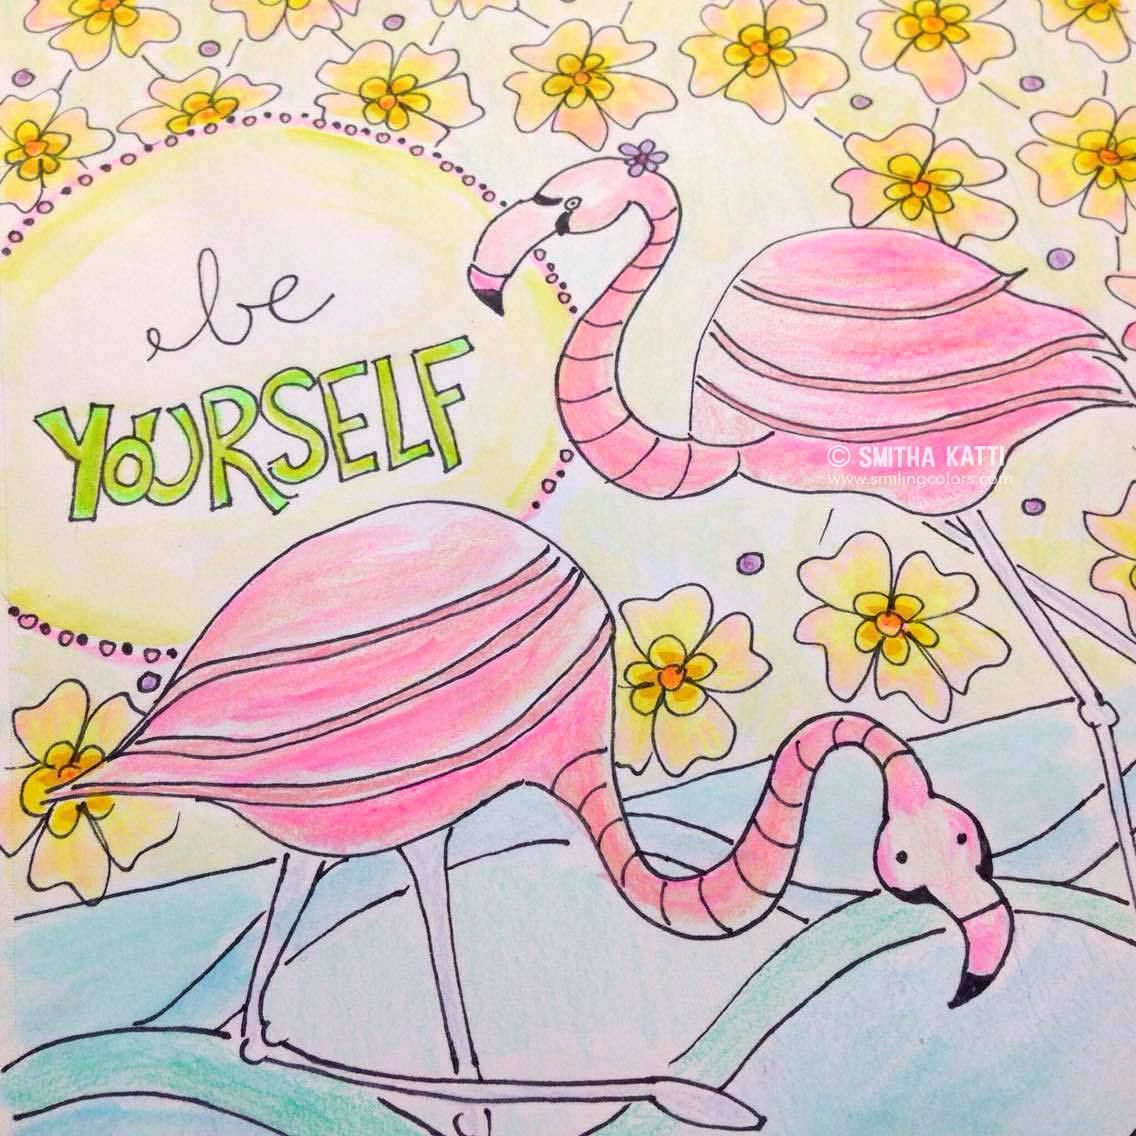 Coloring sheets for adults flamingo - Flamingo Coloring Page Printable If You Enjoy Keeping Things Trendy And Relaxing With An Adult